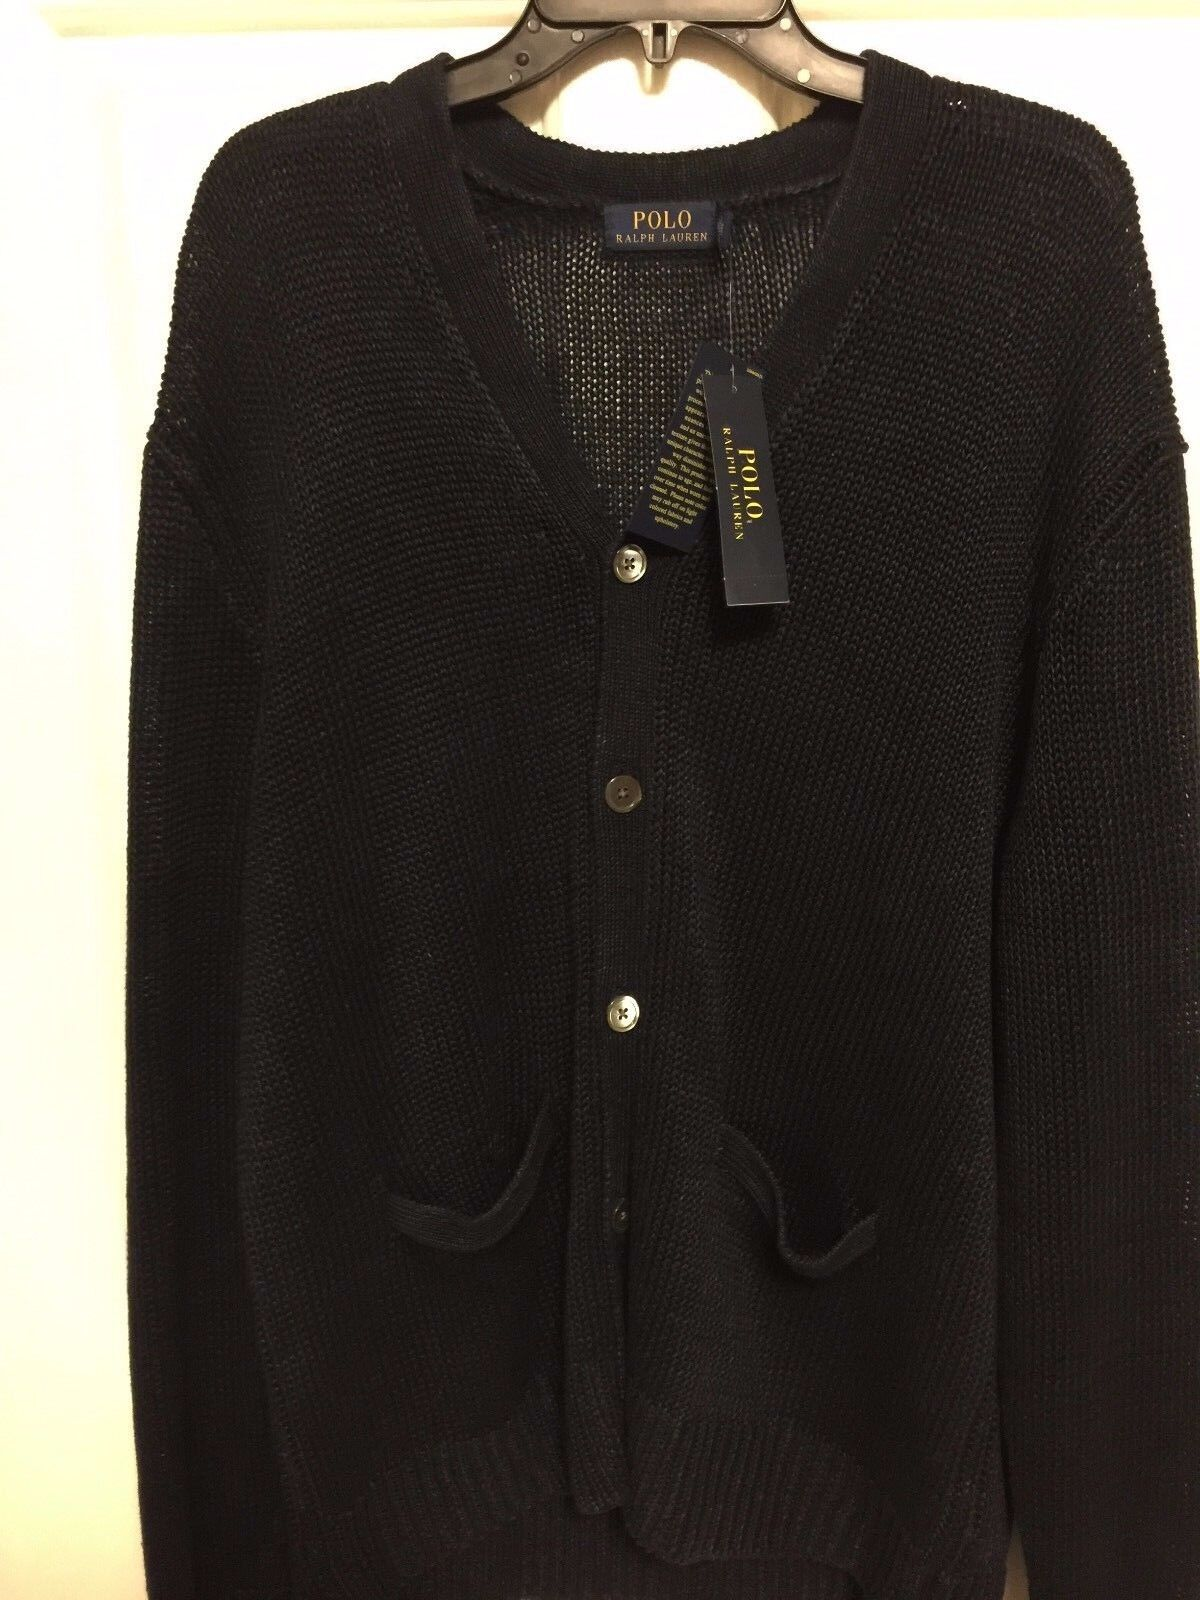 herren Polo Ralph Lauren Cardigan..Button Front Pockets..Navy..100% Linen..groß